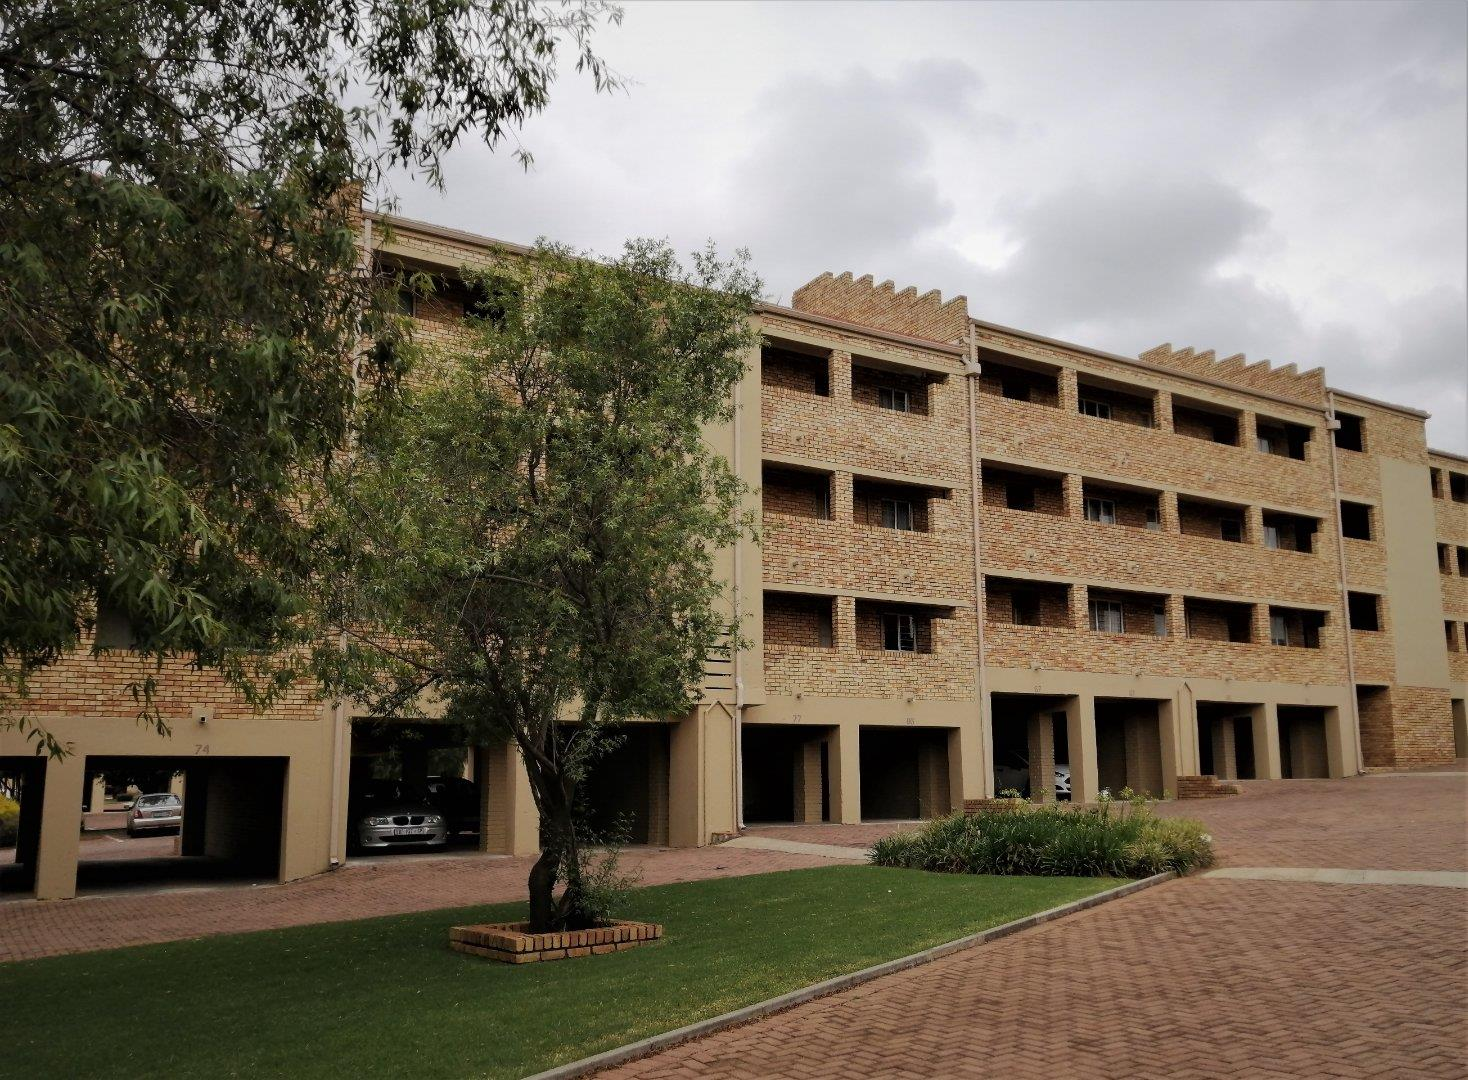 2 Bedroom Apartment for Sale in Wilro Park, Roodepoort - Gauteng